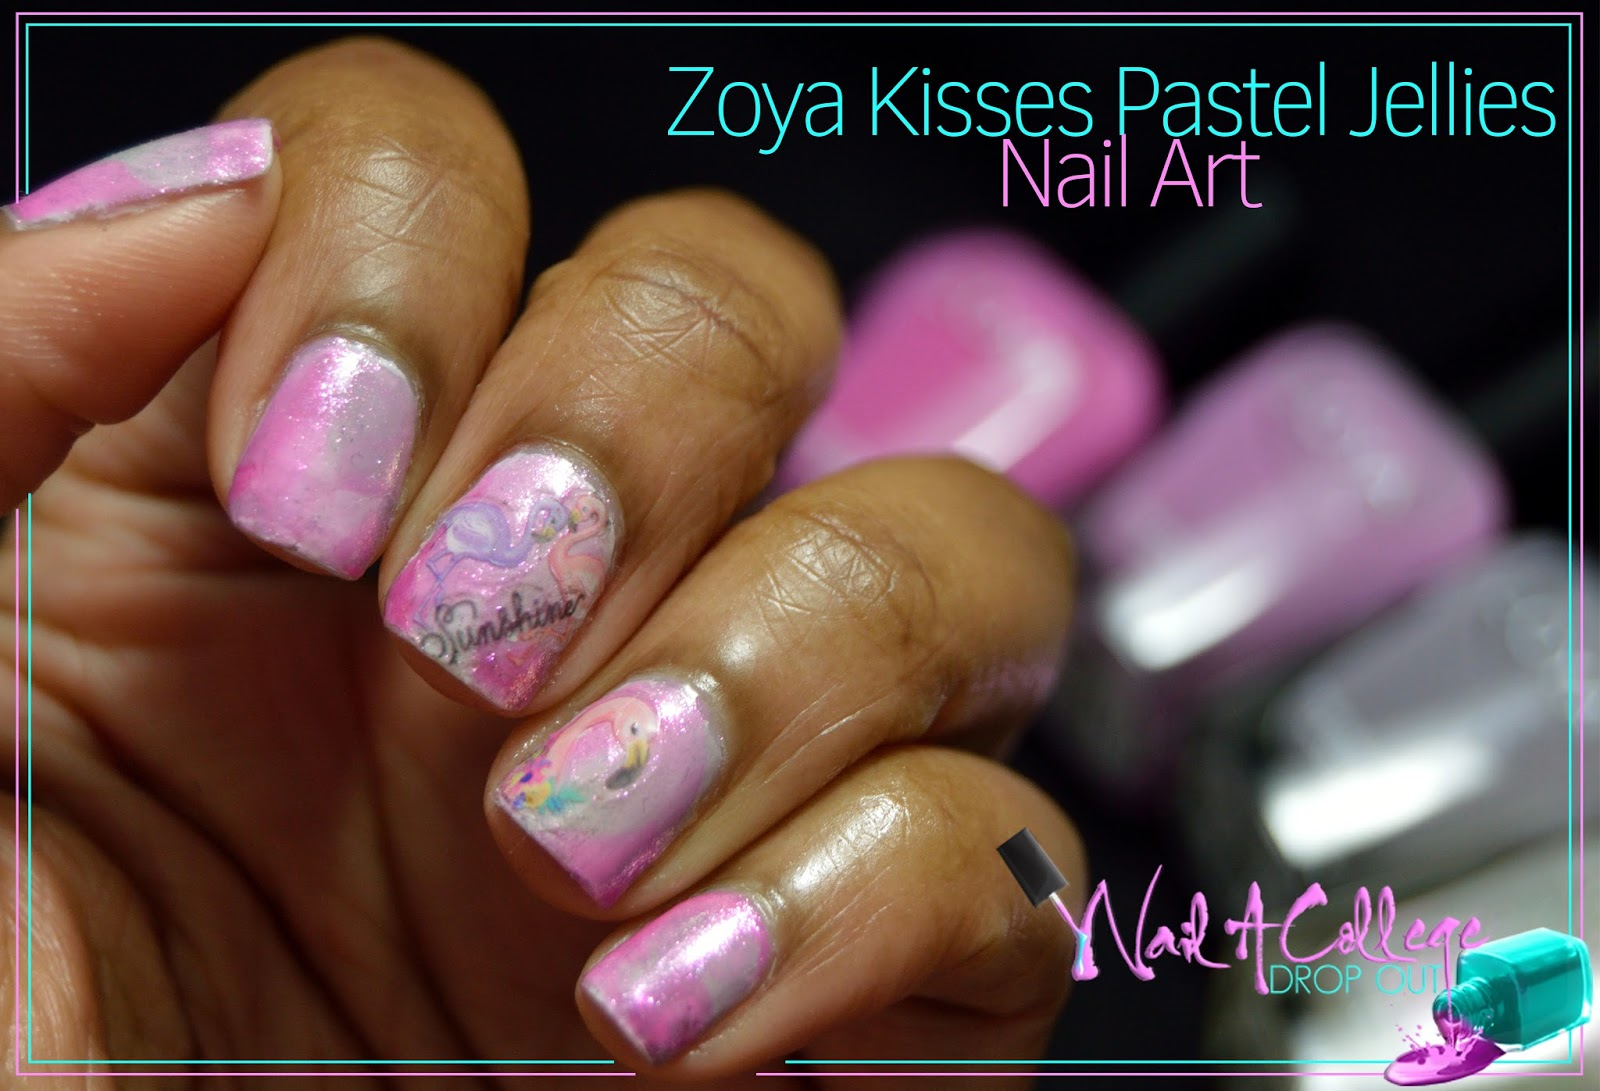 Nail A College Drop Out: Zoya Kisses Pastel Jellies Nail Art